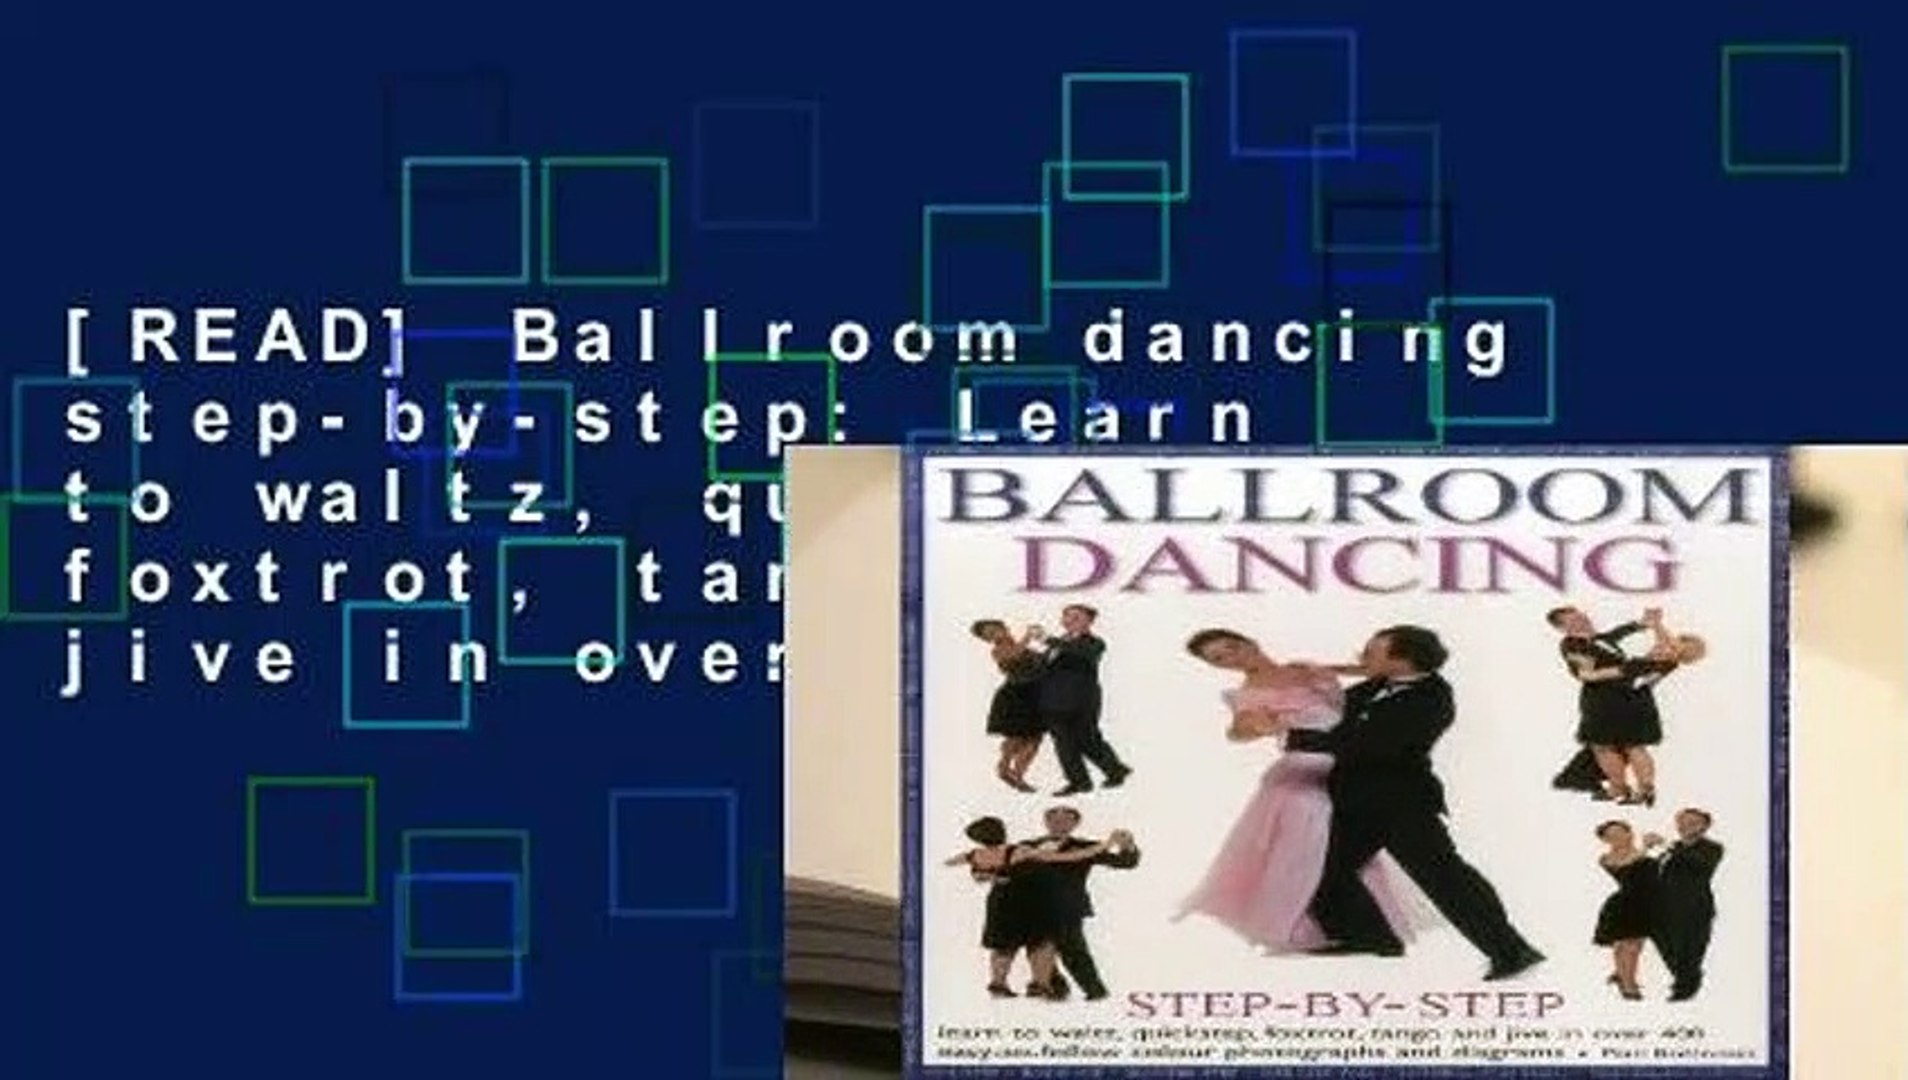 [READ] Ballroom dancing step-by-step: Learn to waltz, quickstep, foxtrot, tango and jive in over